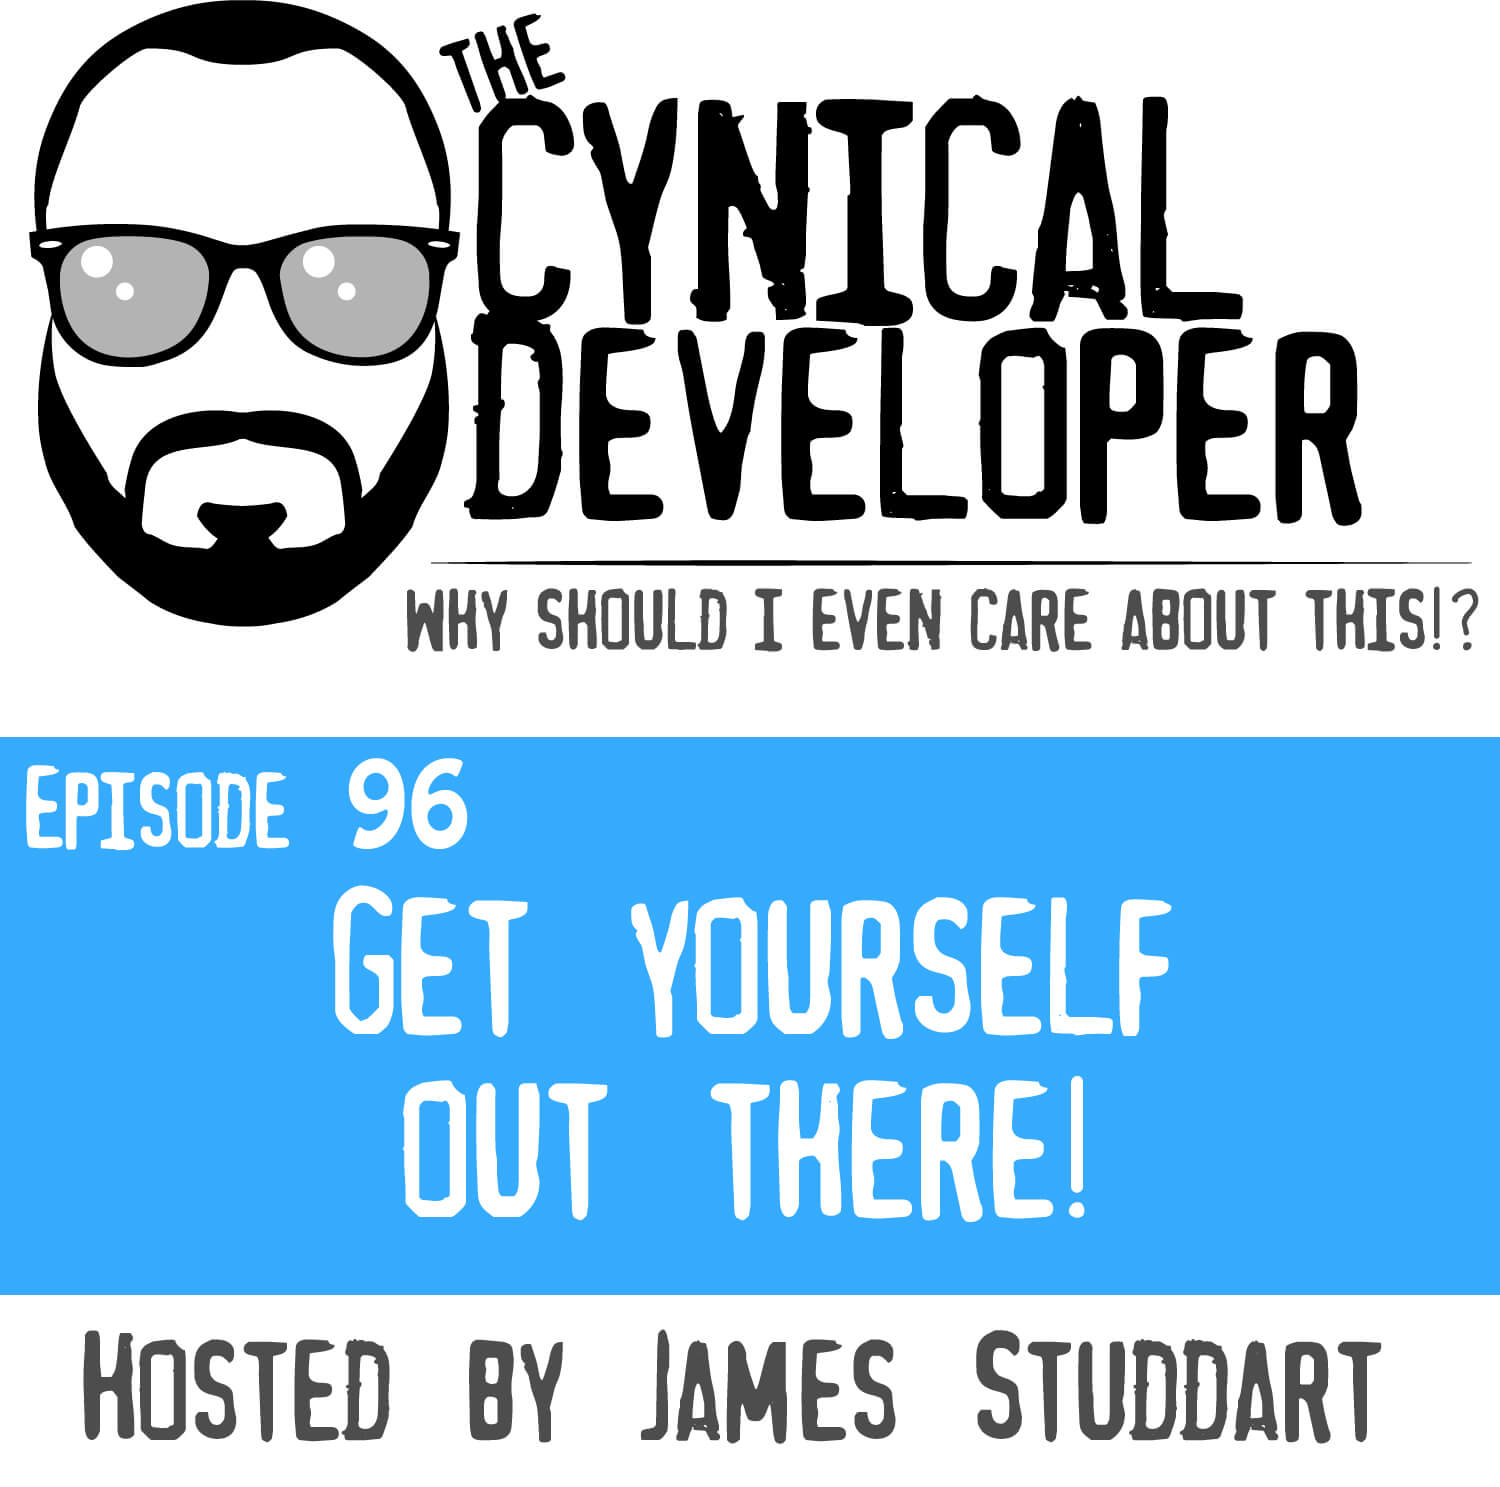 Episode 96 - Get yourself out there